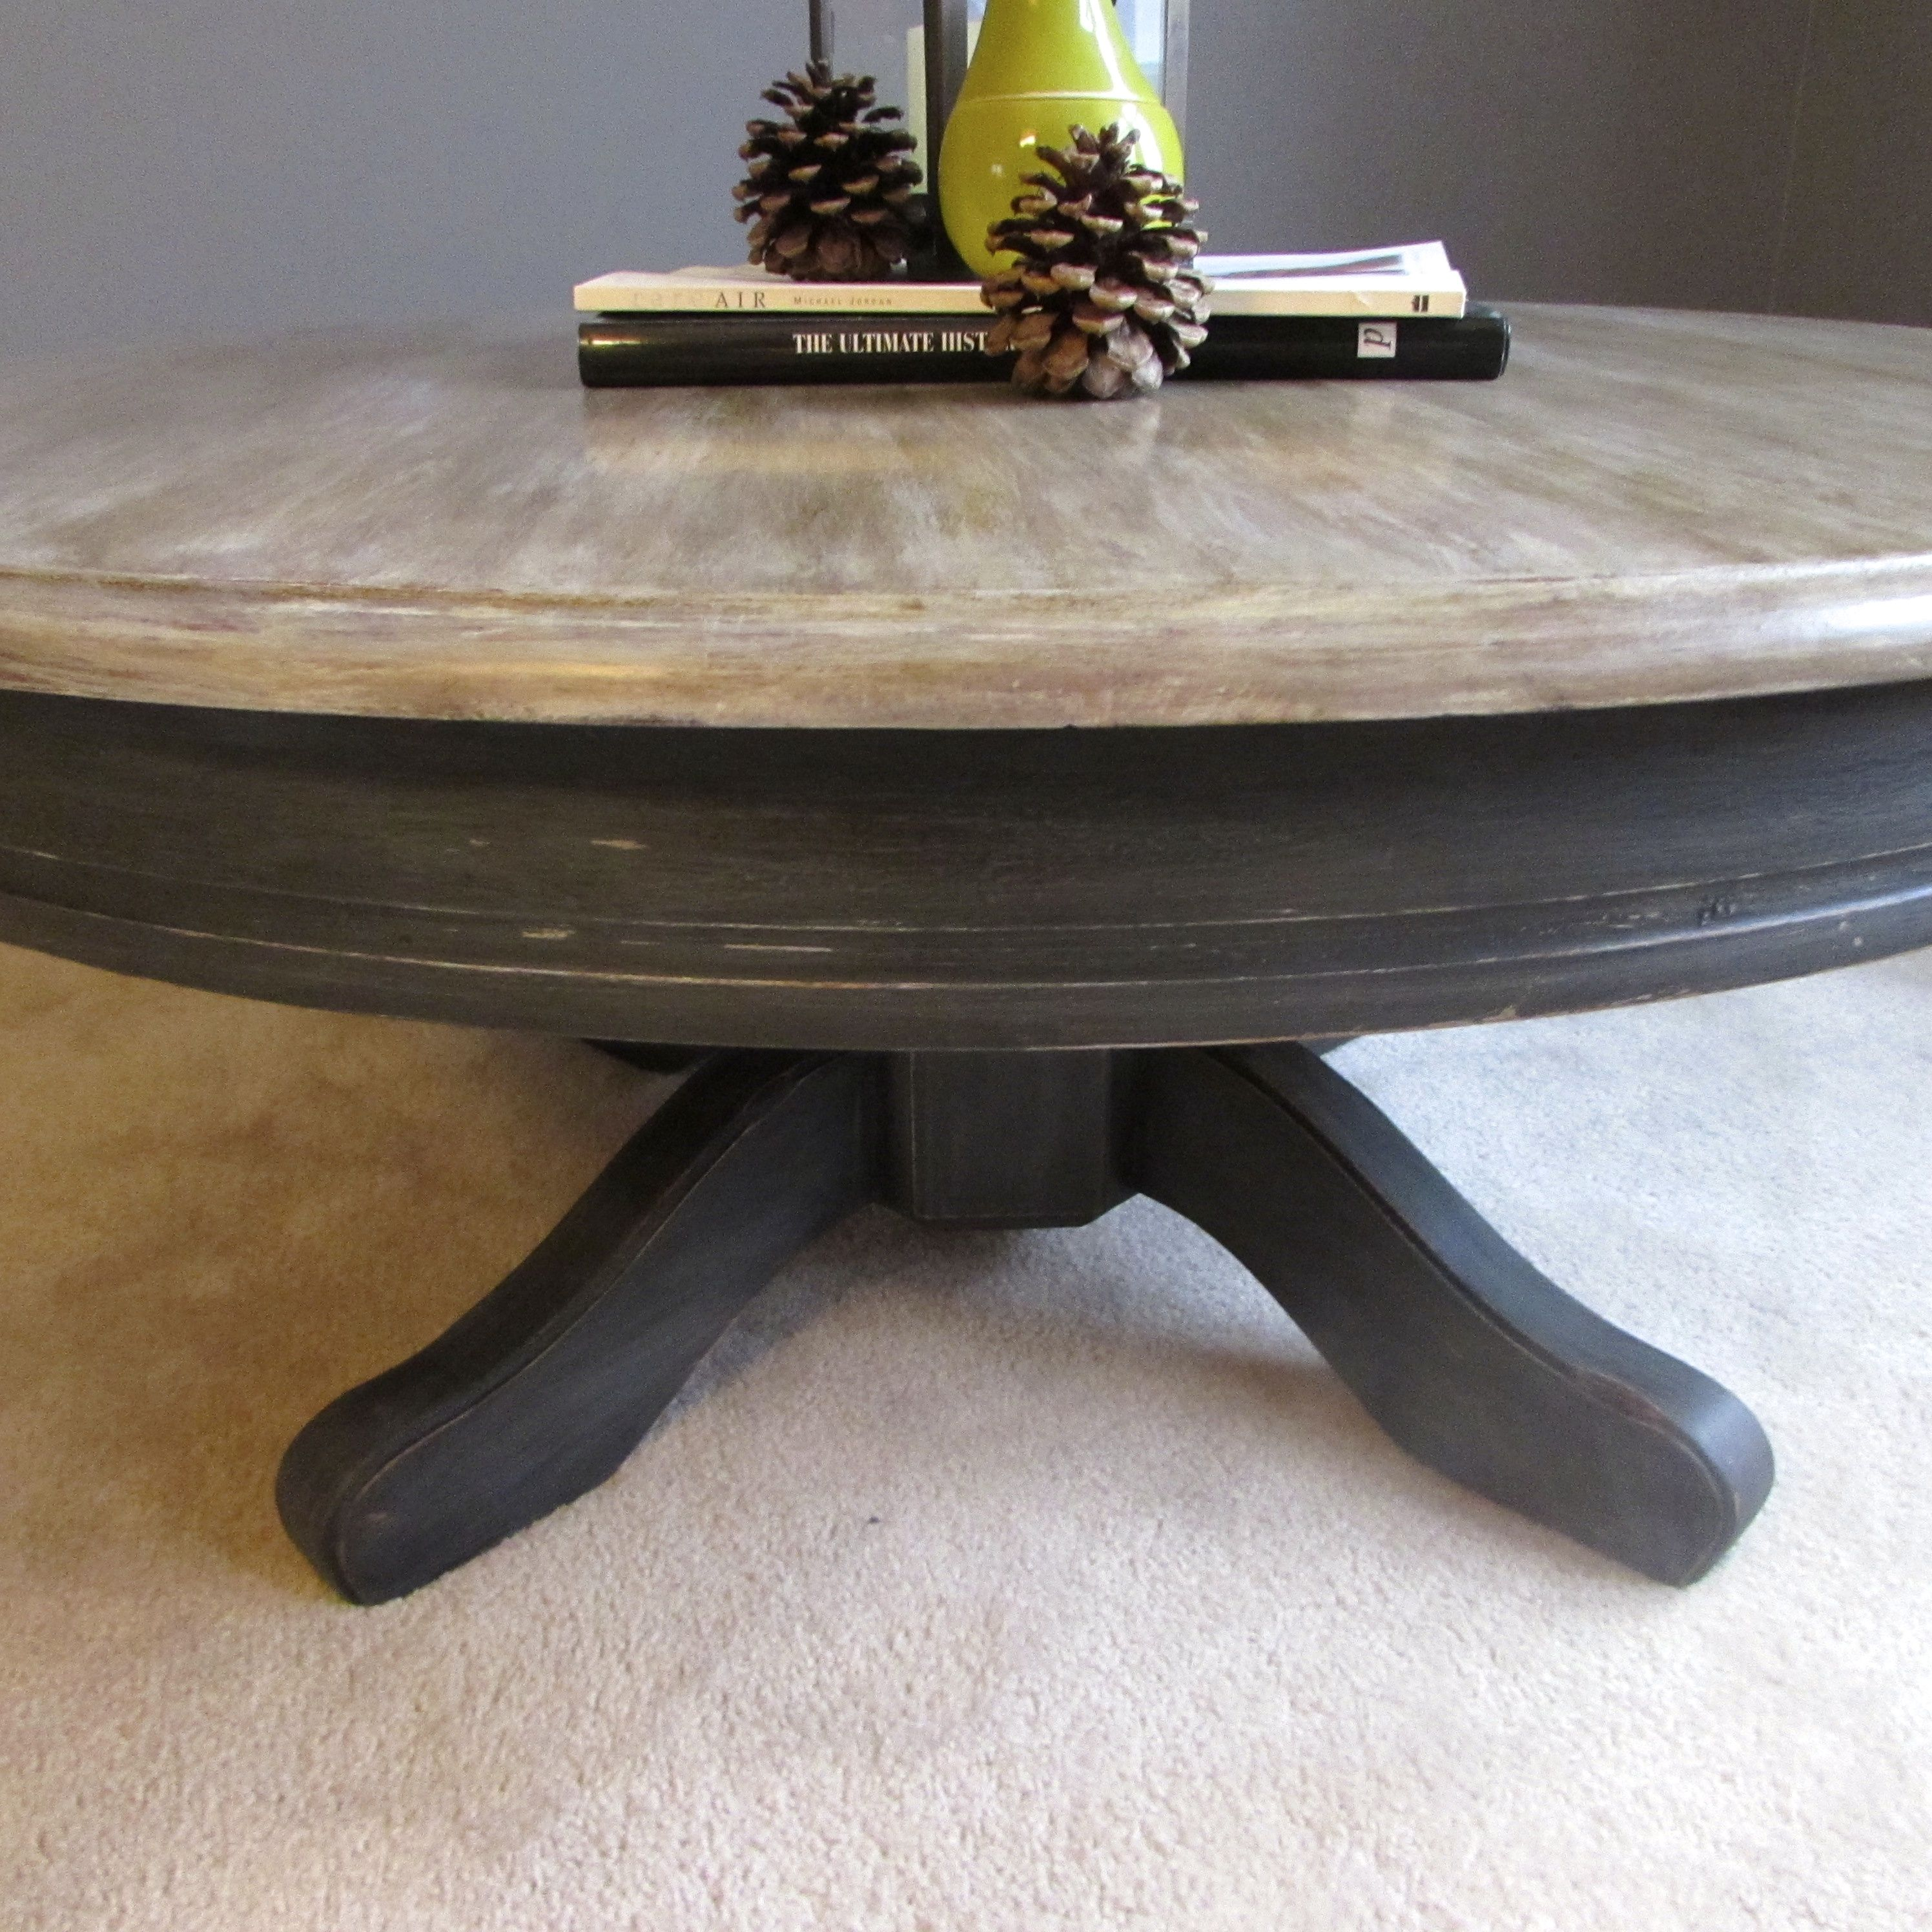 Restoration Hardware Inspired Coffee Table Top paint in a custom